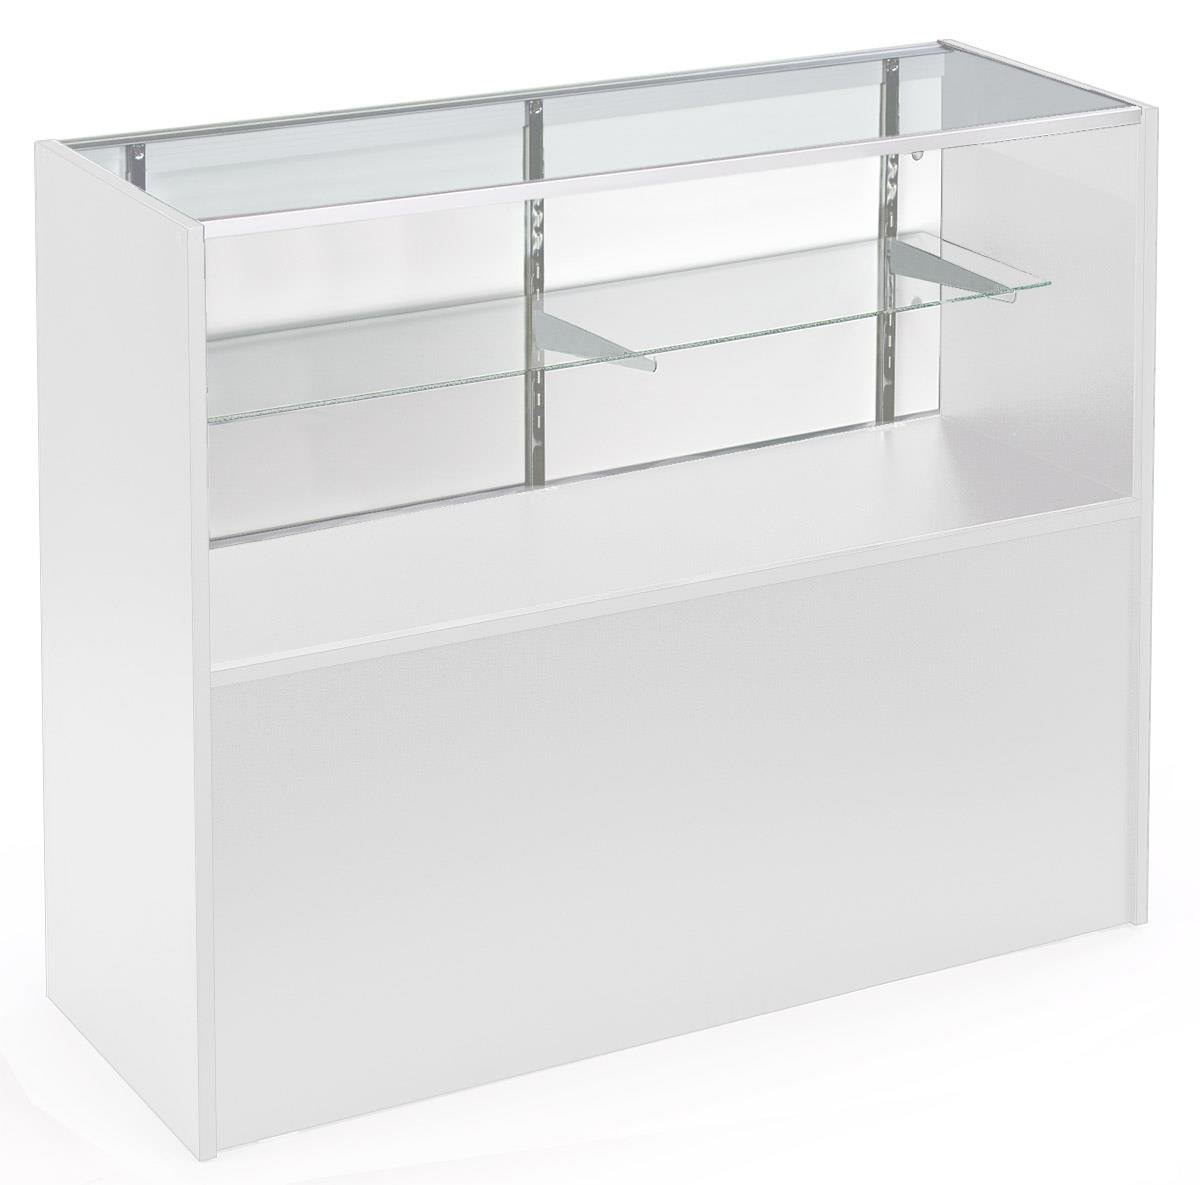 Displays2go 4' Store Counter with Glass Shelves, Aluminum, Tempered Glass, Laminated Particle Board - White Finish (MRCHV4WHKD)